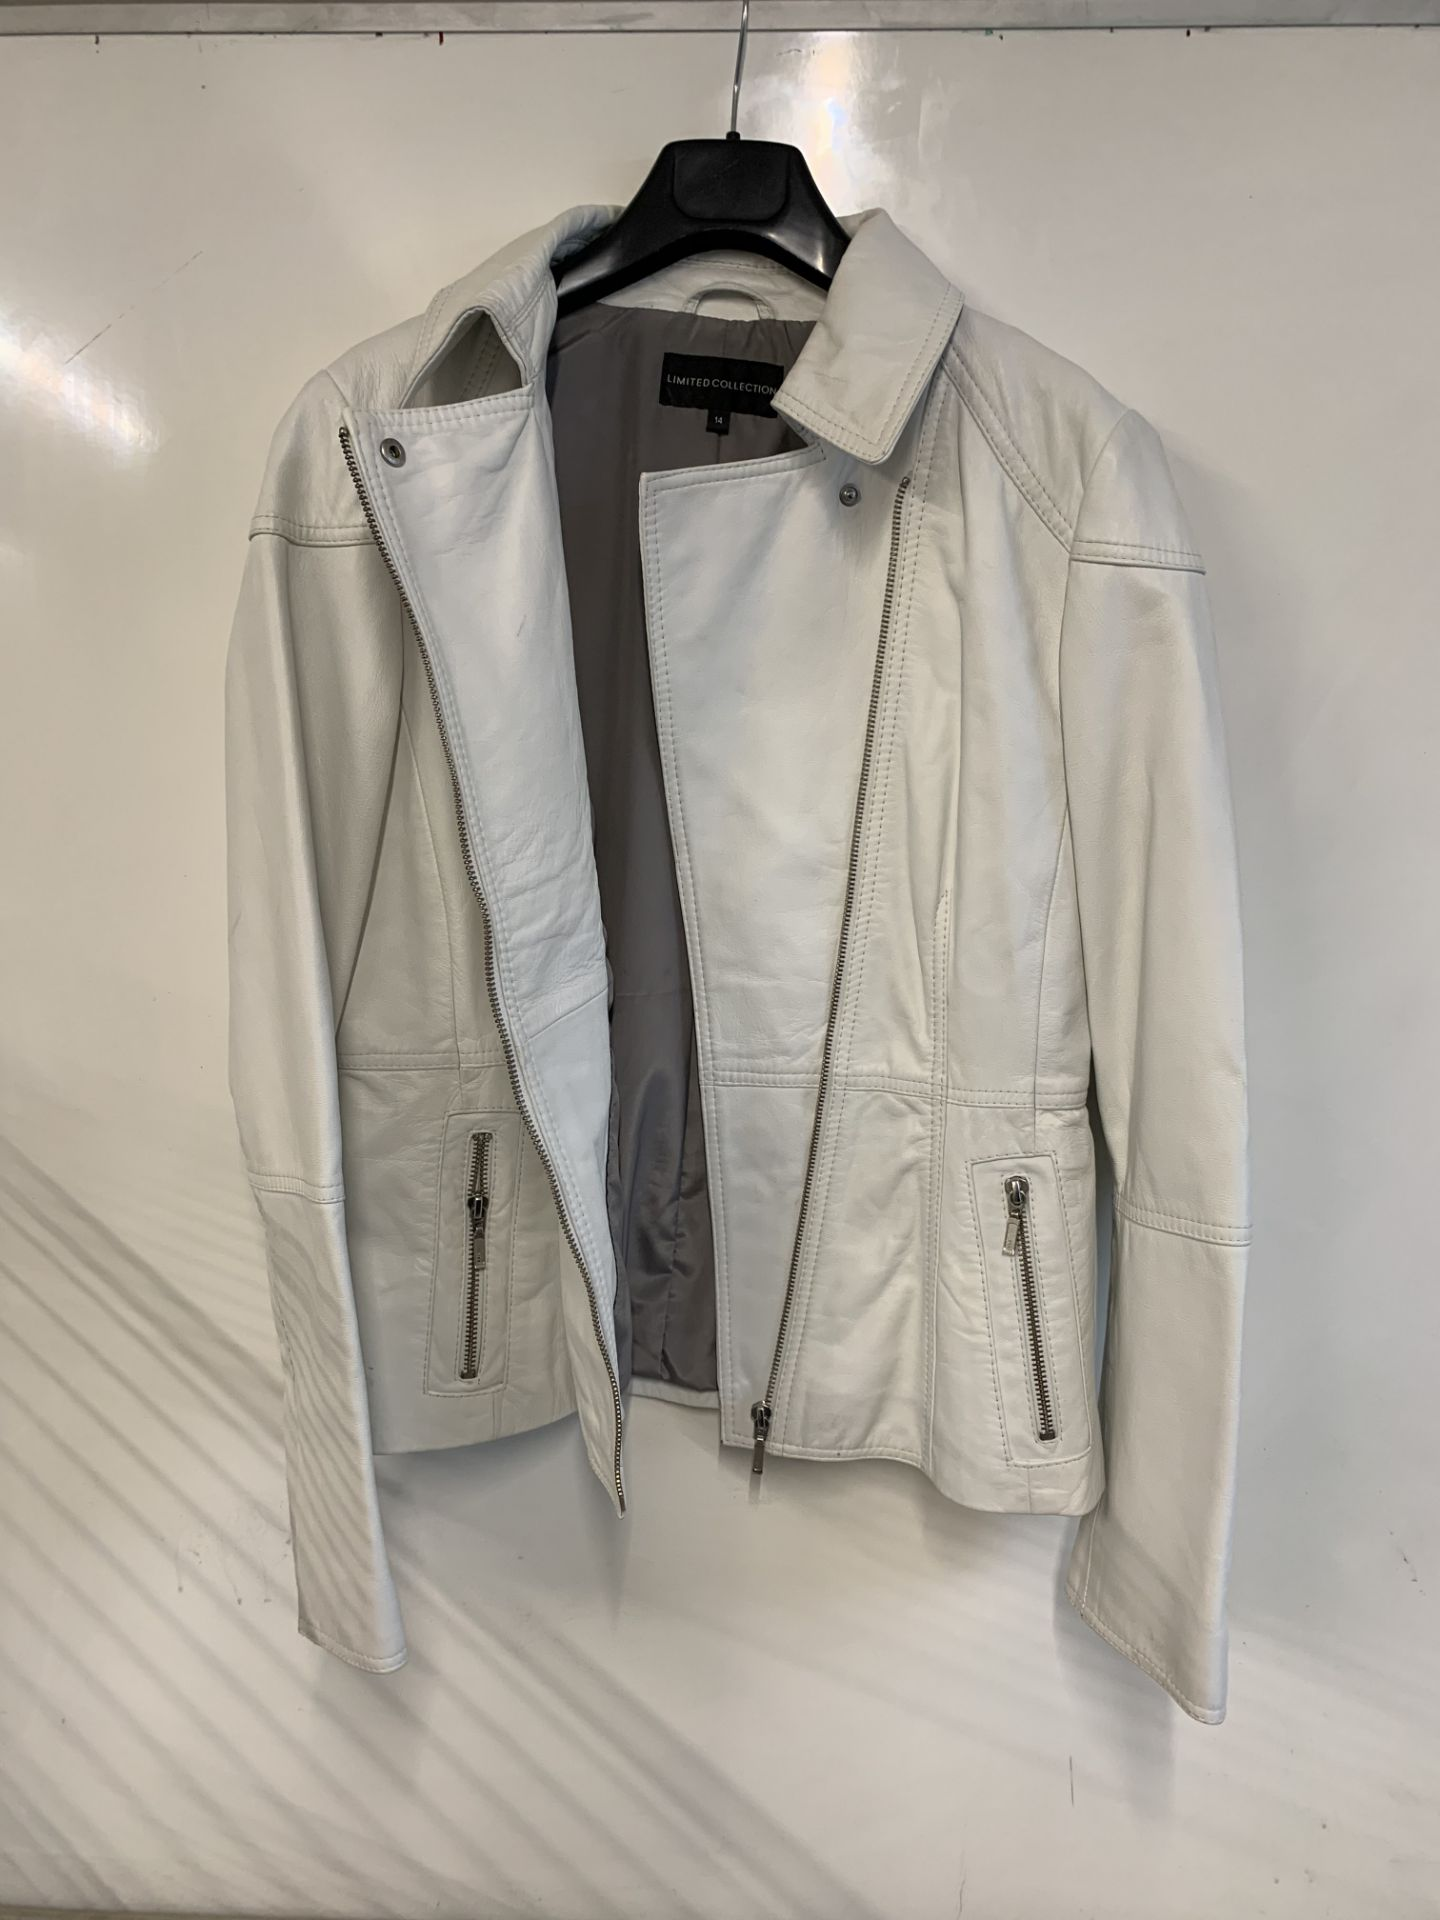 Lot 17 - M&S Limited Edition women's White Leather Jacket Size 6